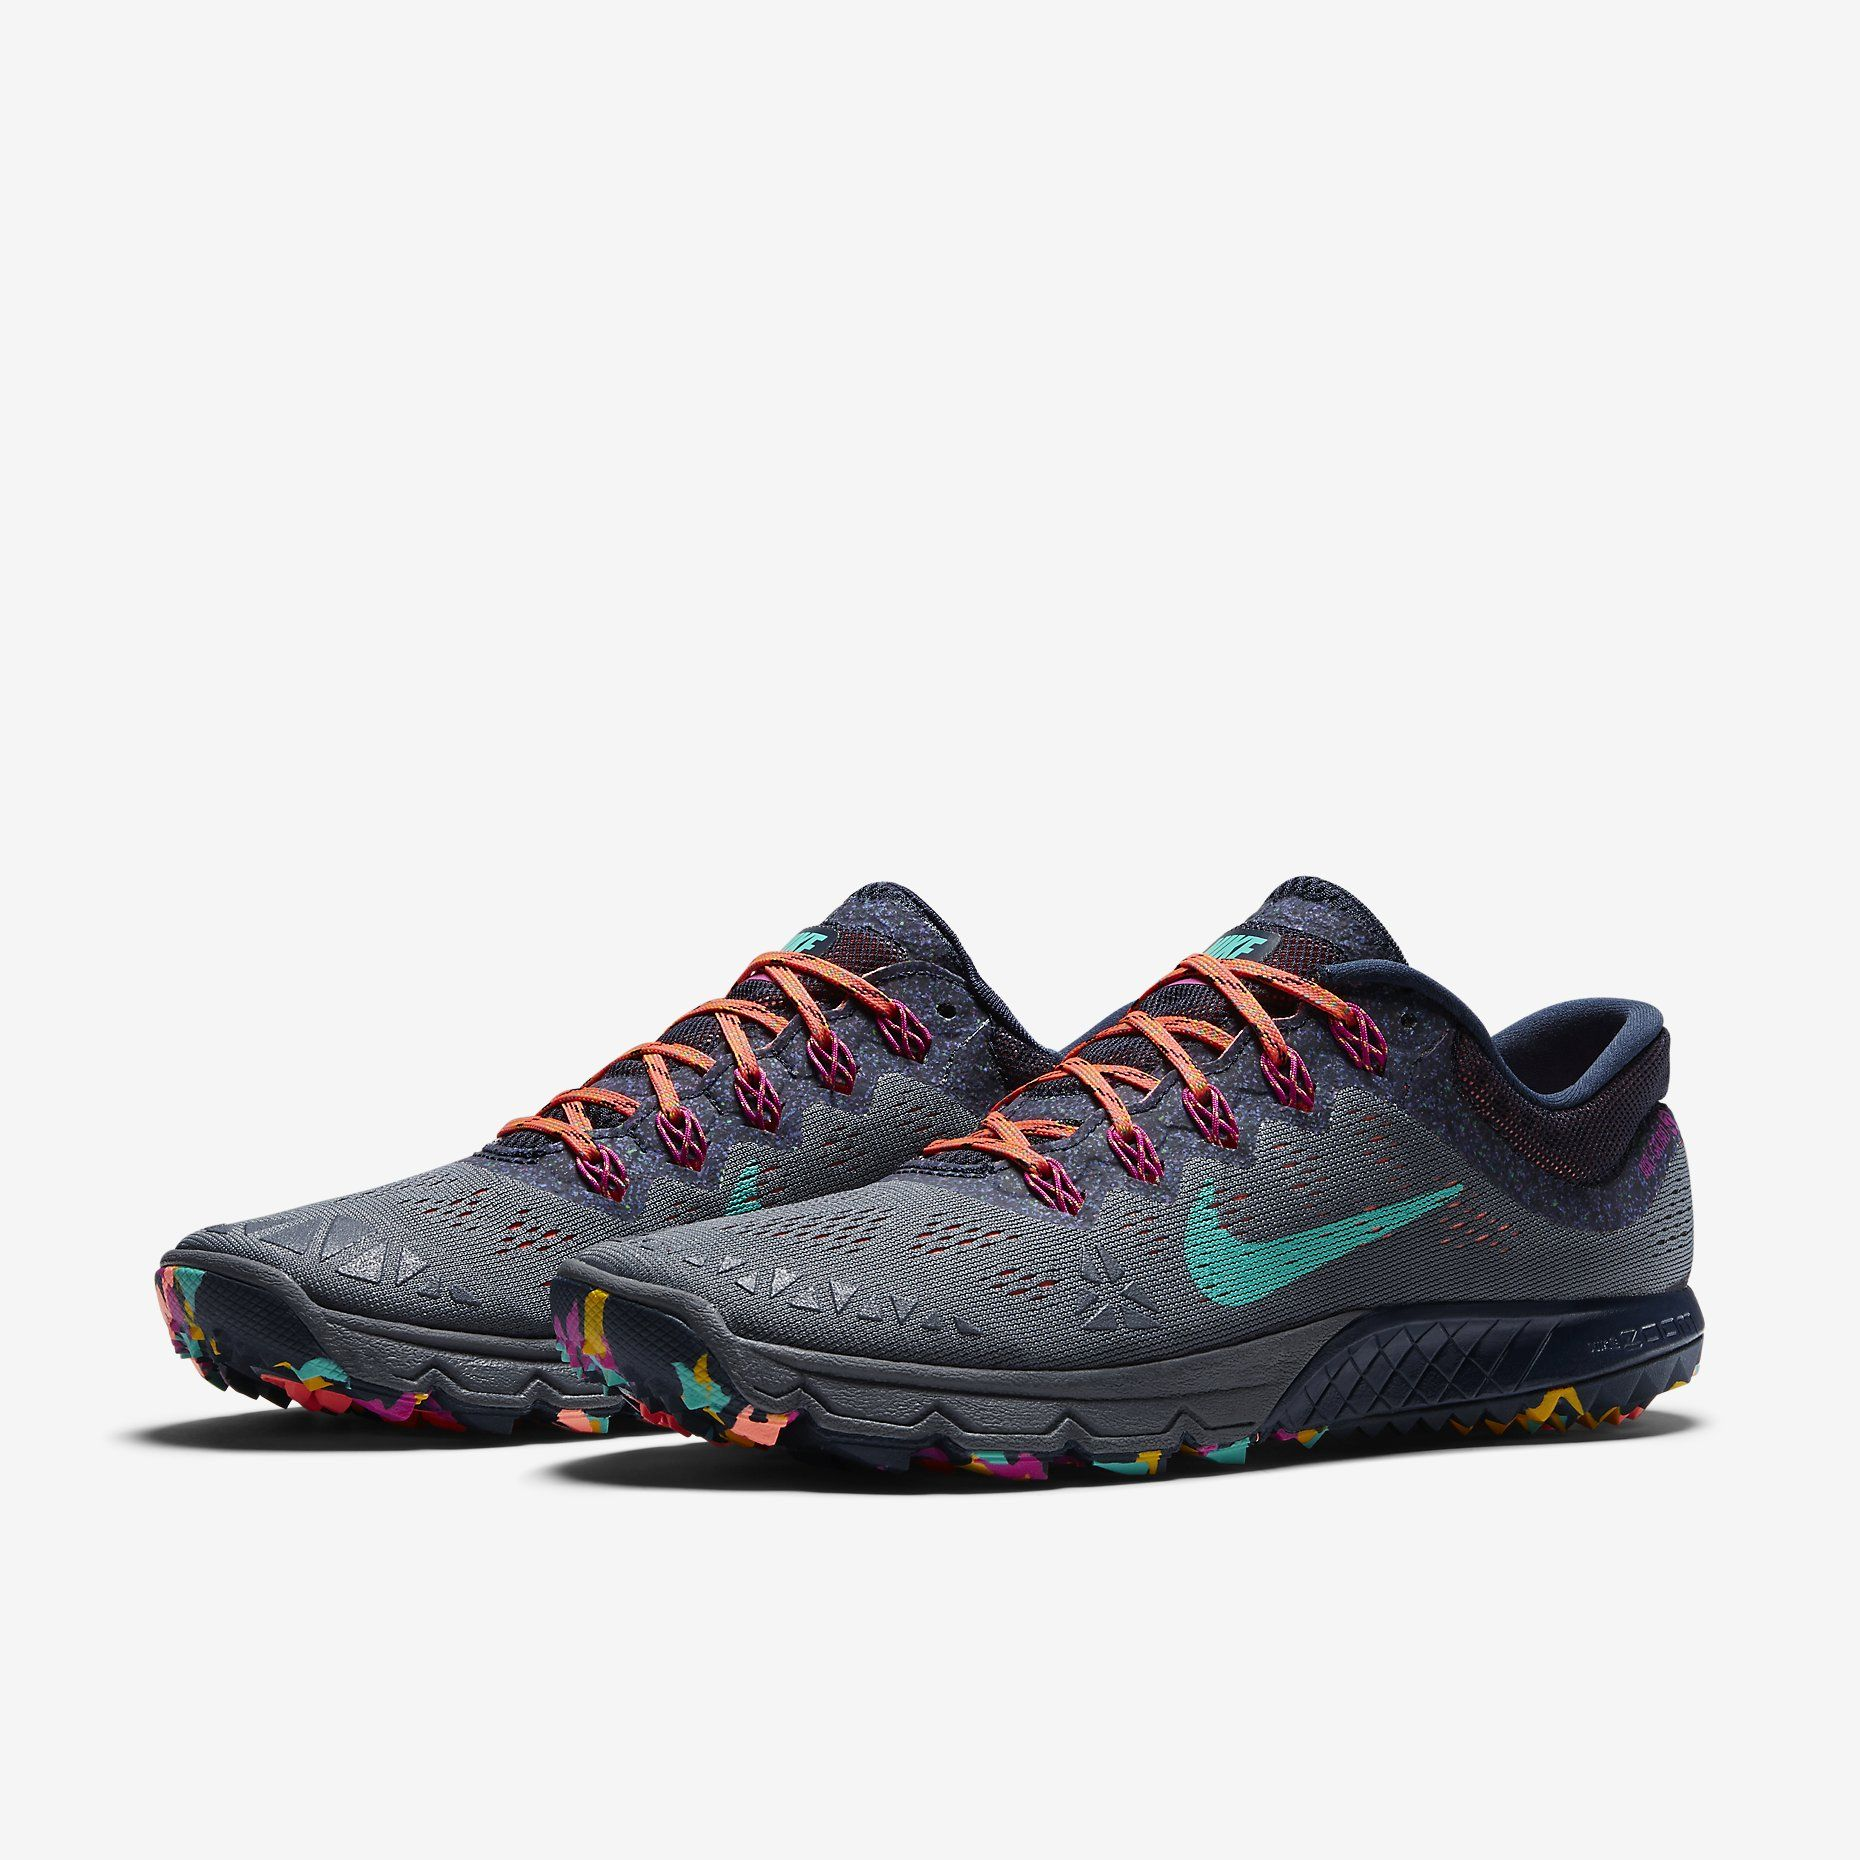 sale retailer 0f978 cf6d6 Nike Zoom Terra Kiger 2 Women s Running Shoe. Trail Running Collection   great for running and hiking